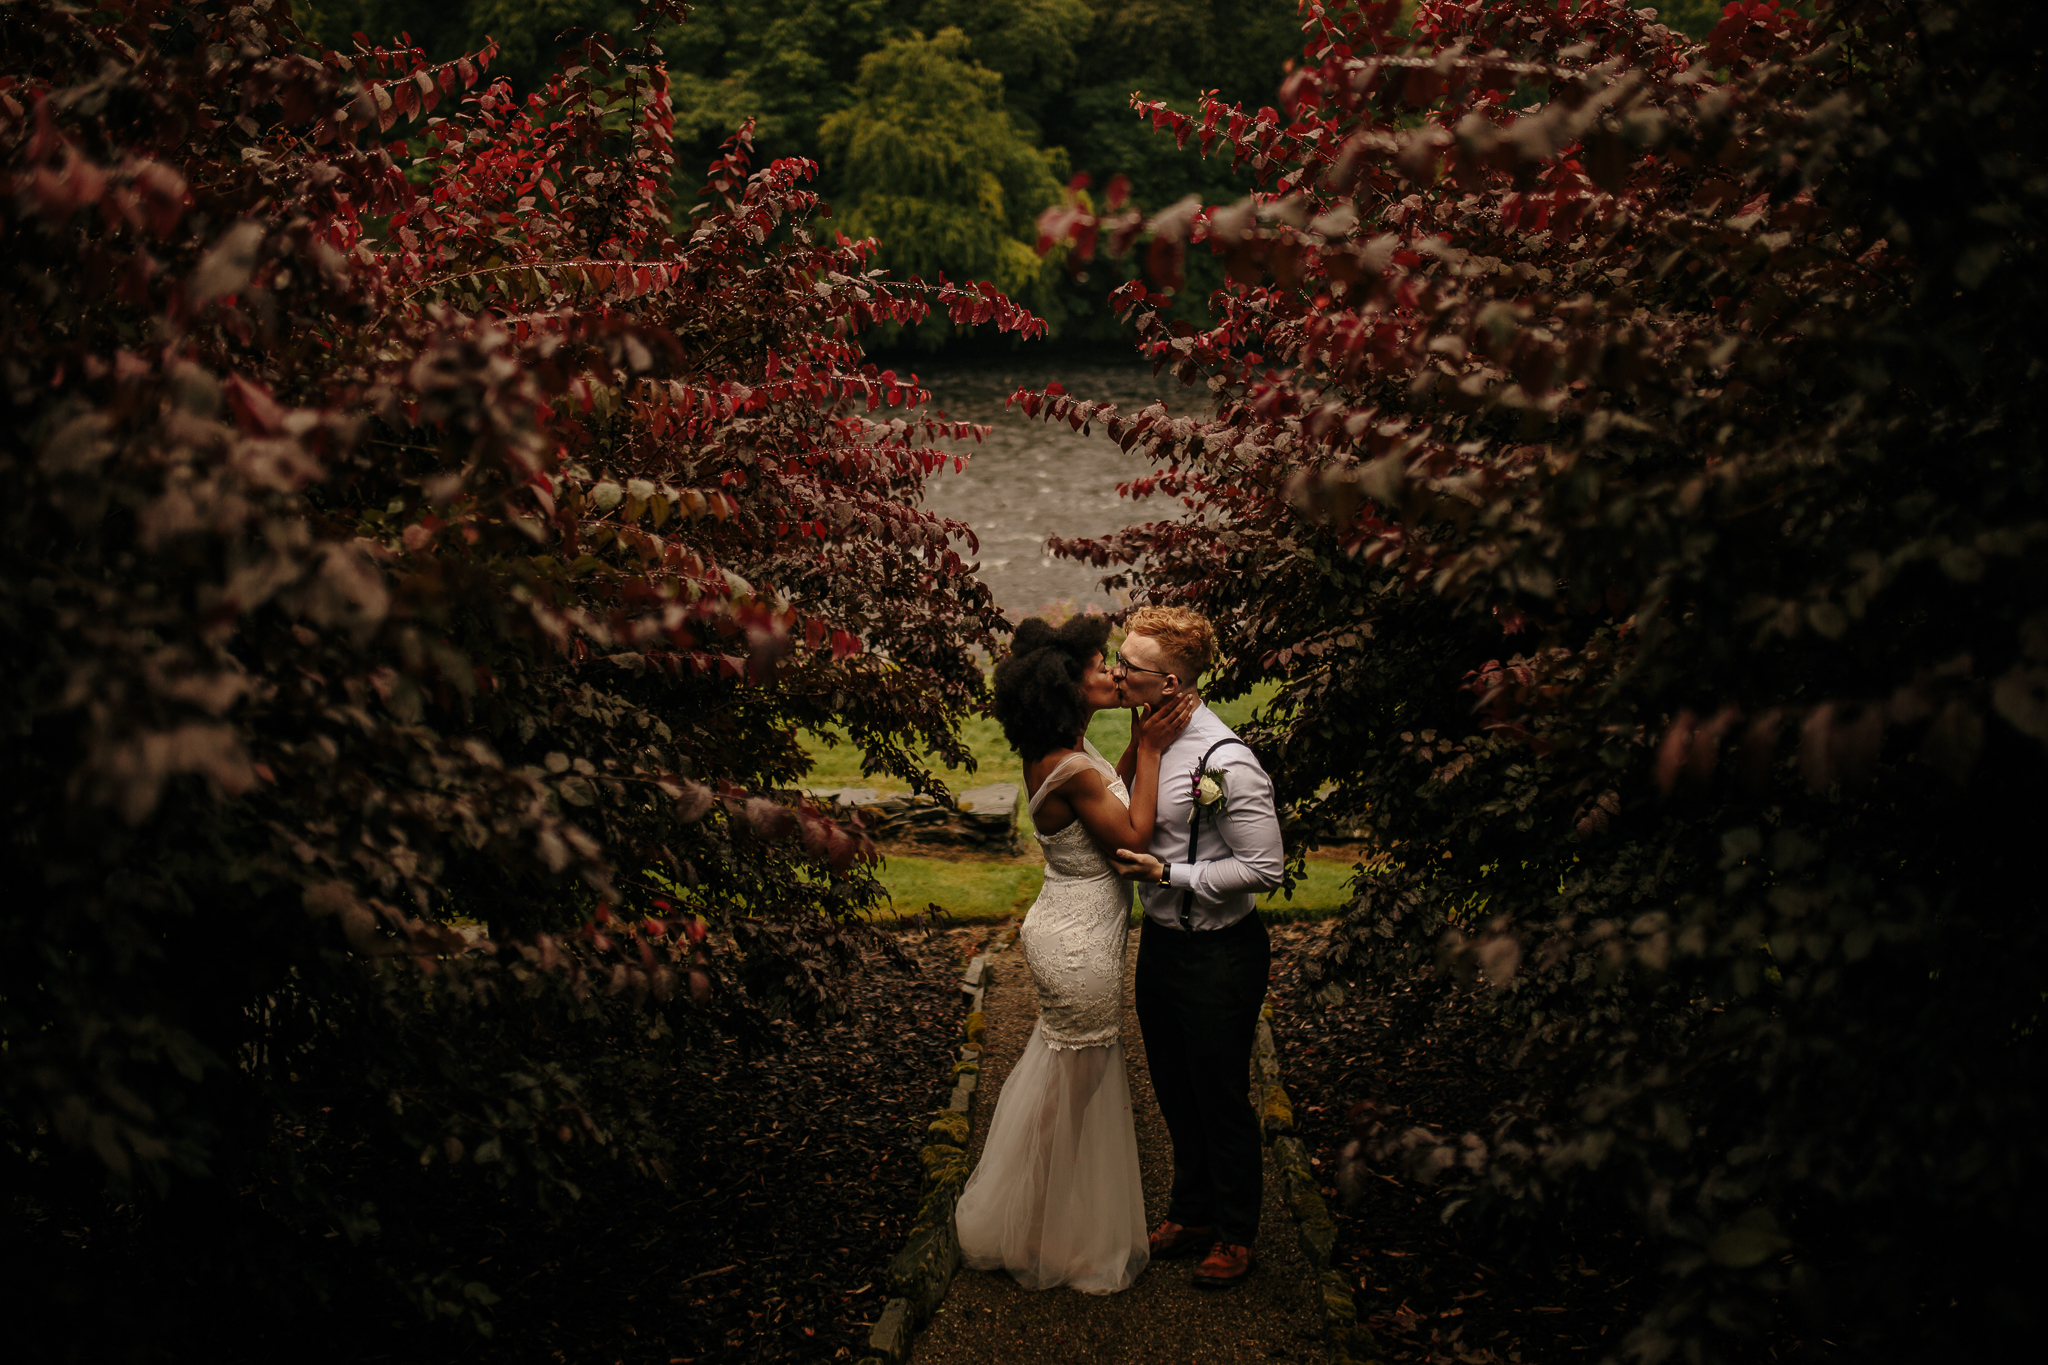 Victoria & Jamie - WeddingsbyQay - Wedding Photographer (148 of 209).jpg